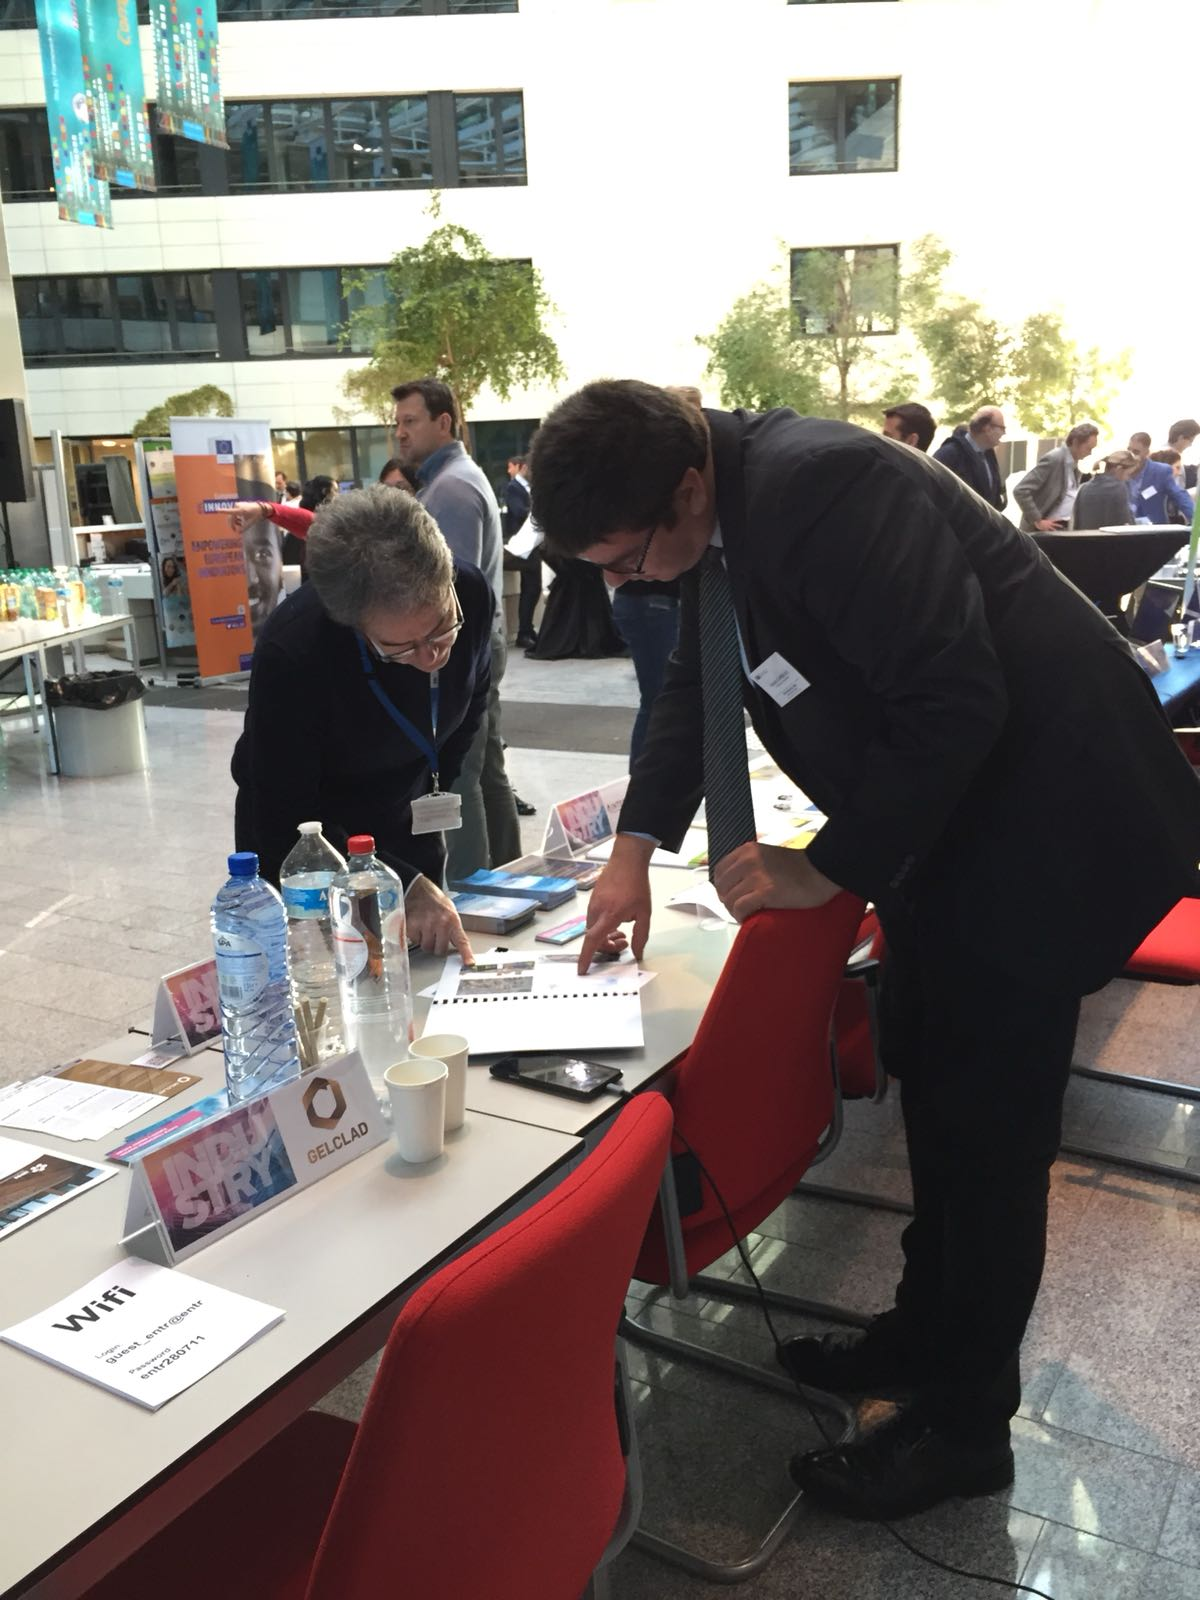 Arkaitz Carbajo, from Eurohelp Consulting, explaining the project during the exhibition